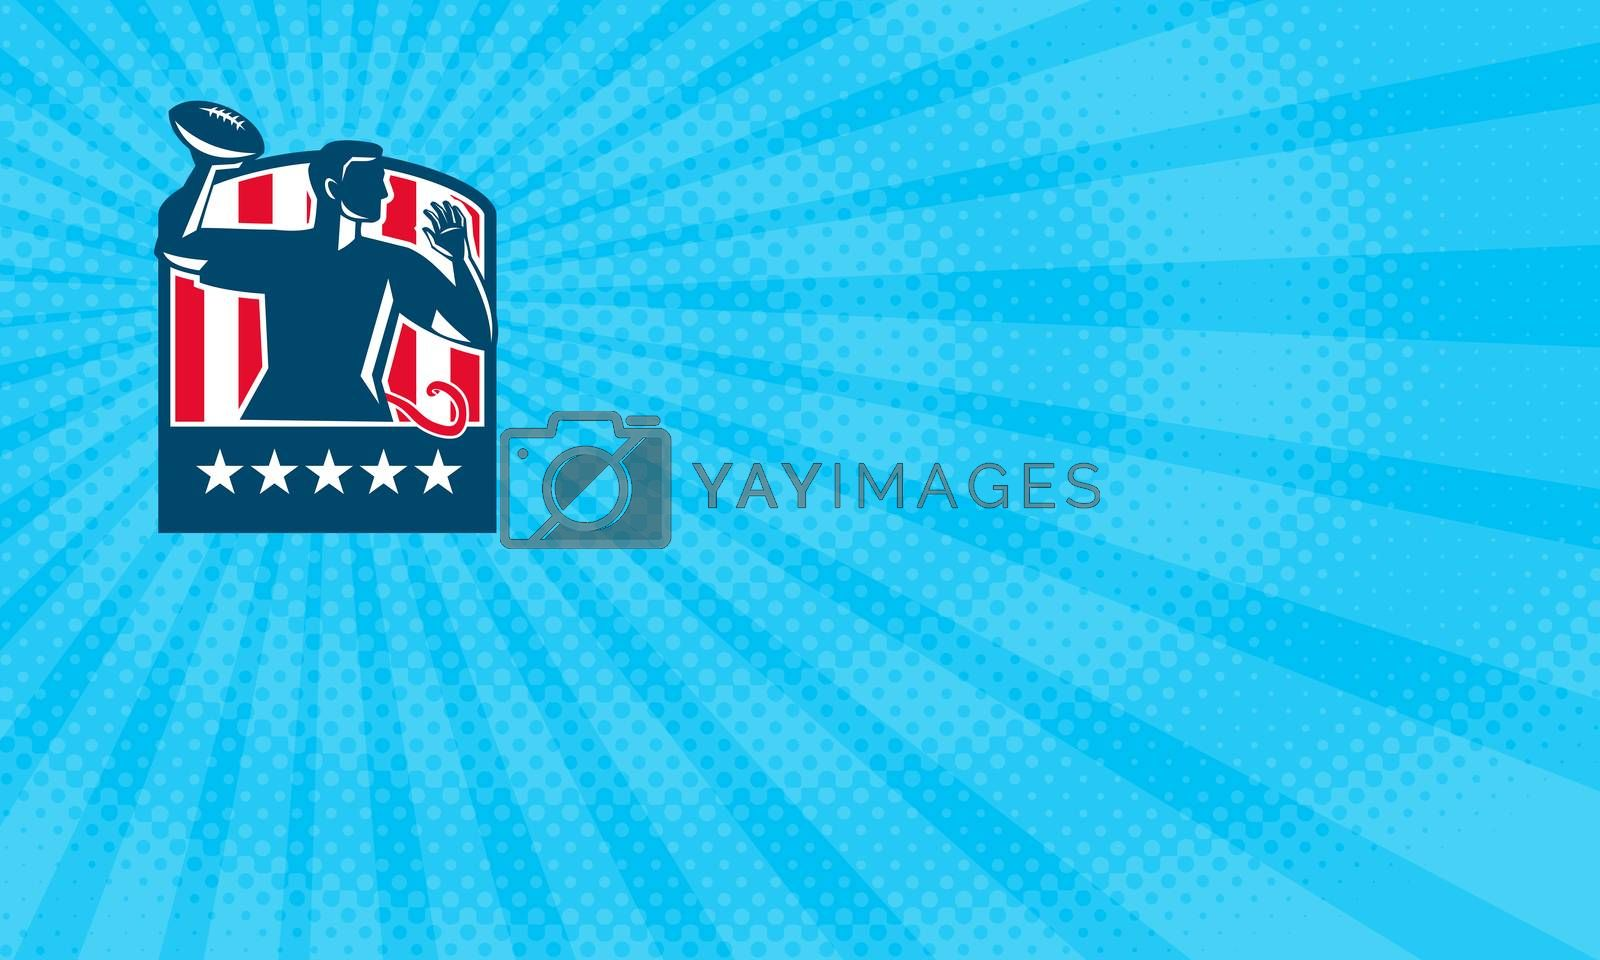 Business card showing Illustration of a flag football player QB passing ball viewed from the side set inside shield crest with usa american stars and stripes flag in the background done in retro style.